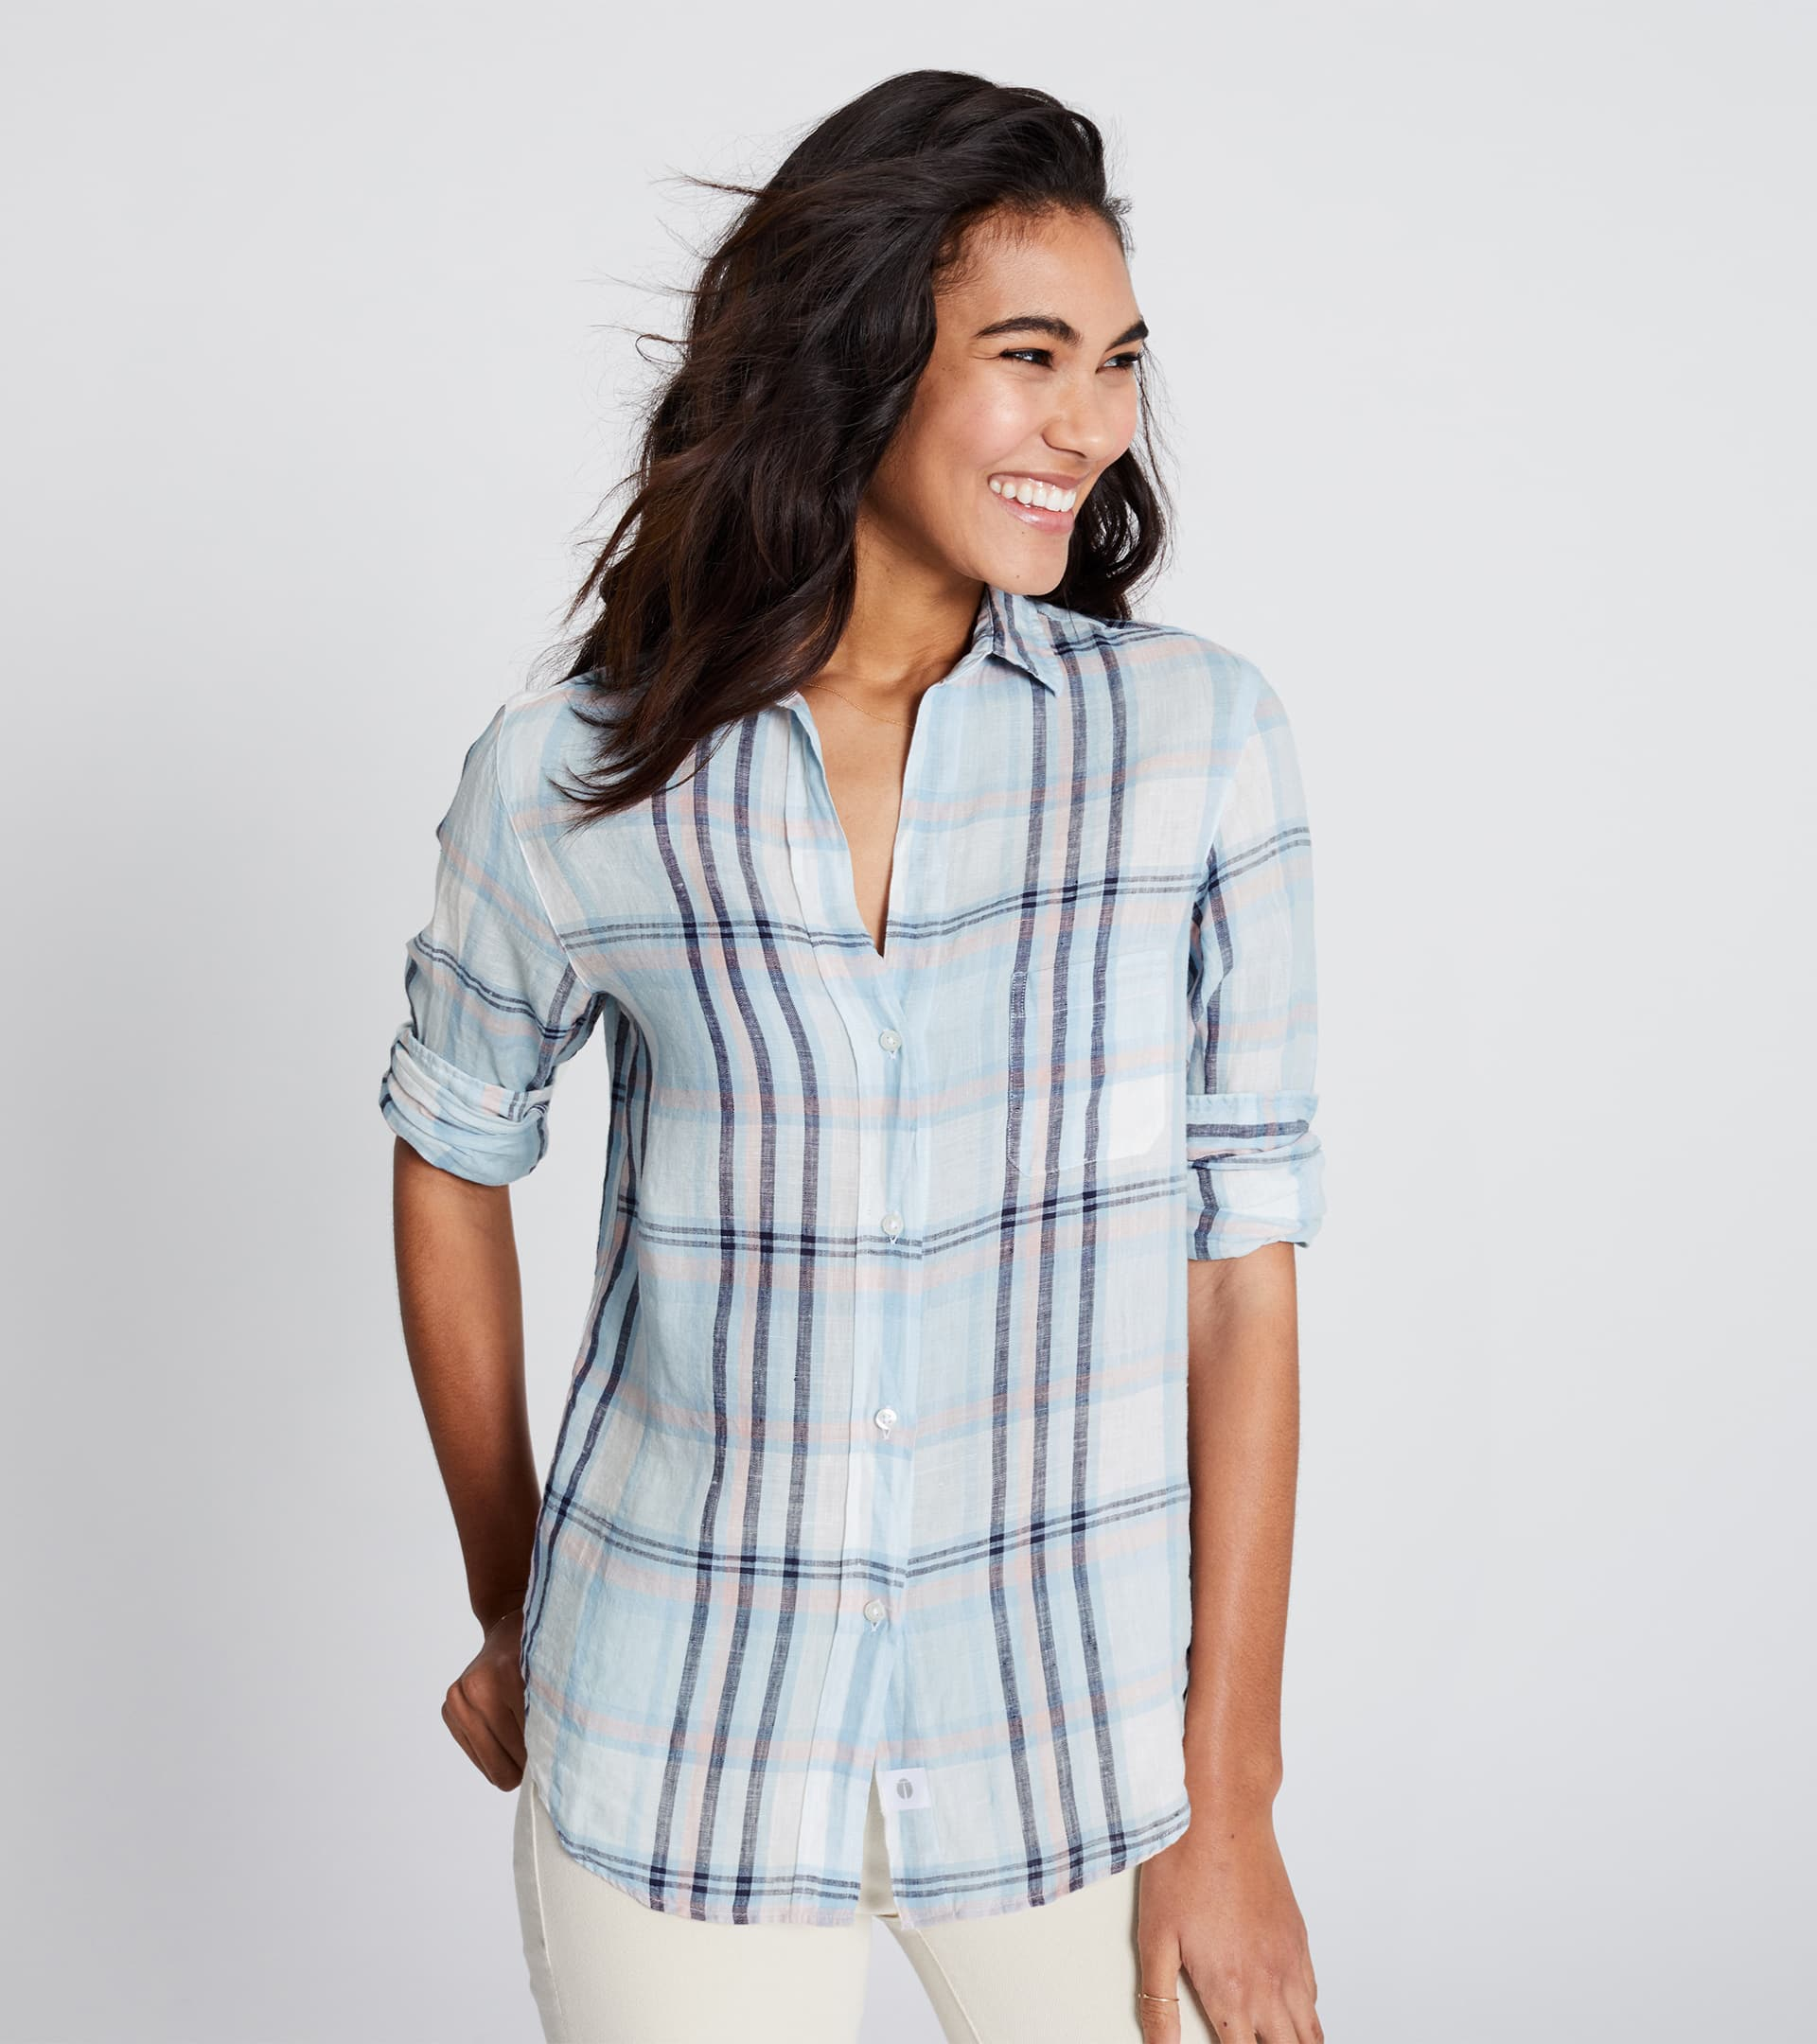 Image of The Hero Seafoam with Pink and Navy Plaid, Tumbled Linen